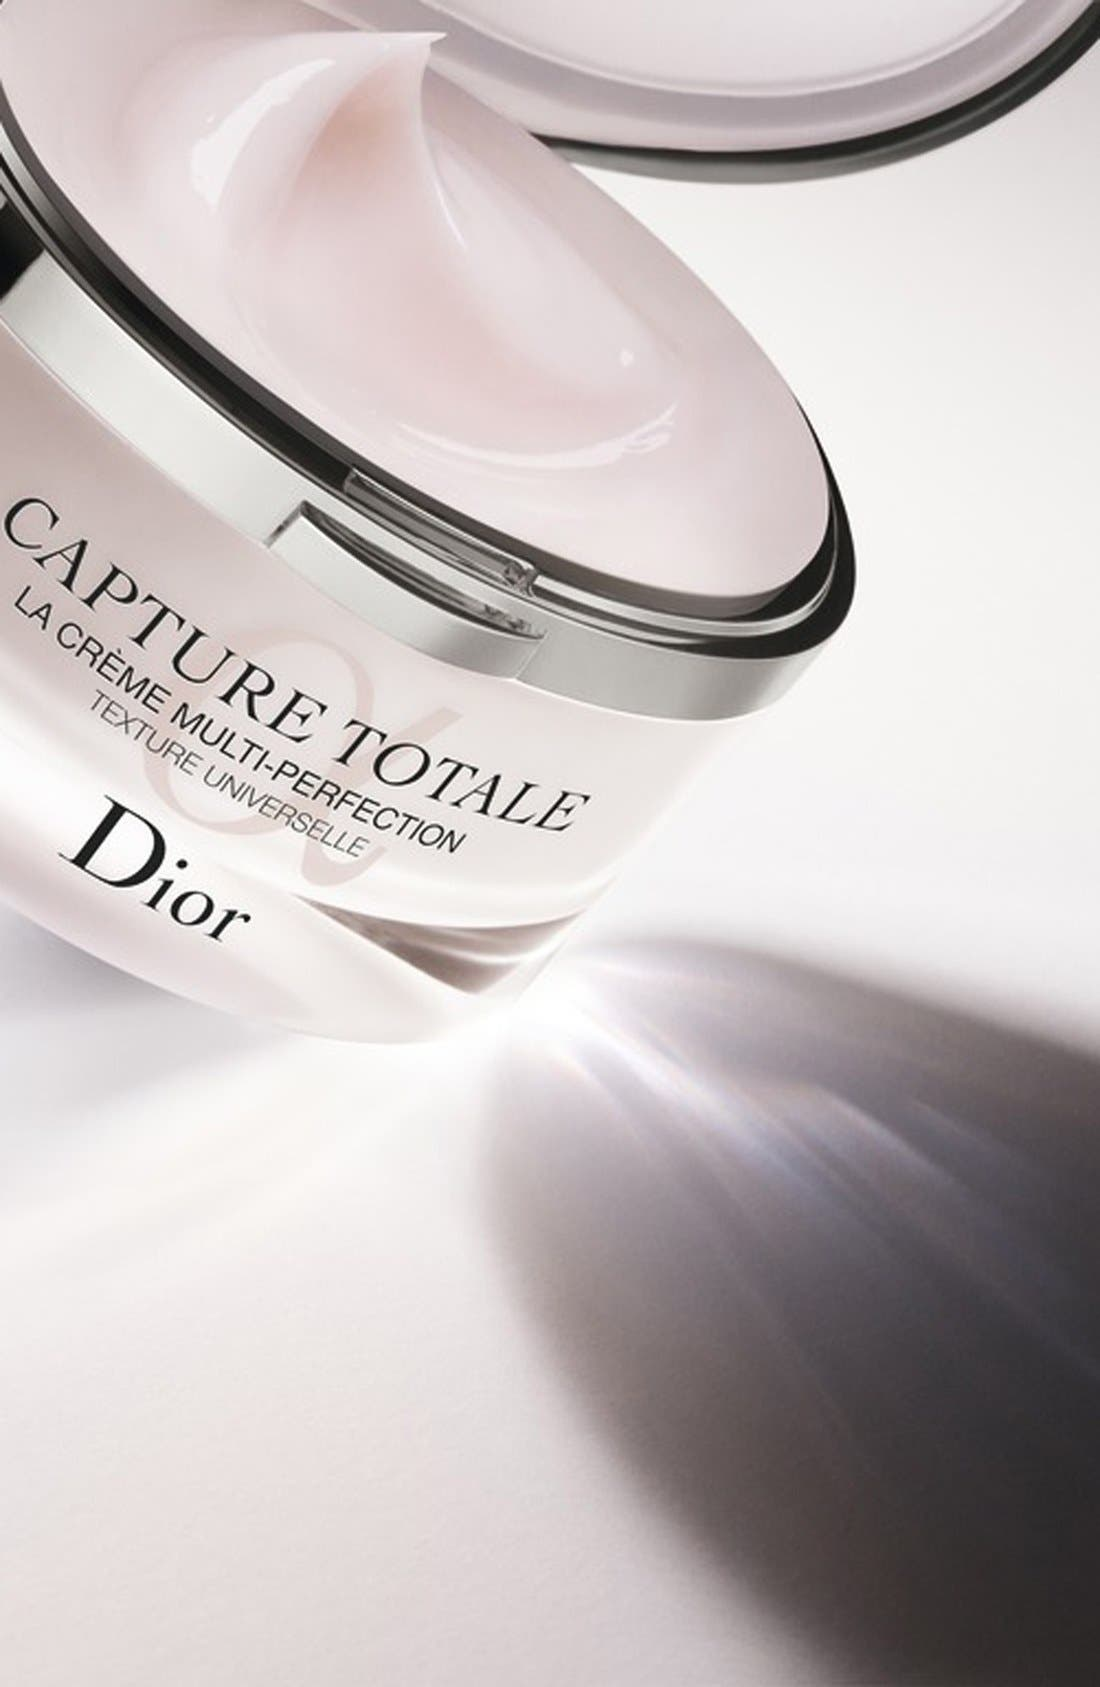 Capture Totale - Light Texture Multi-Perfection Creme,                             Alternate thumbnail 5, color,                             NO COLOR